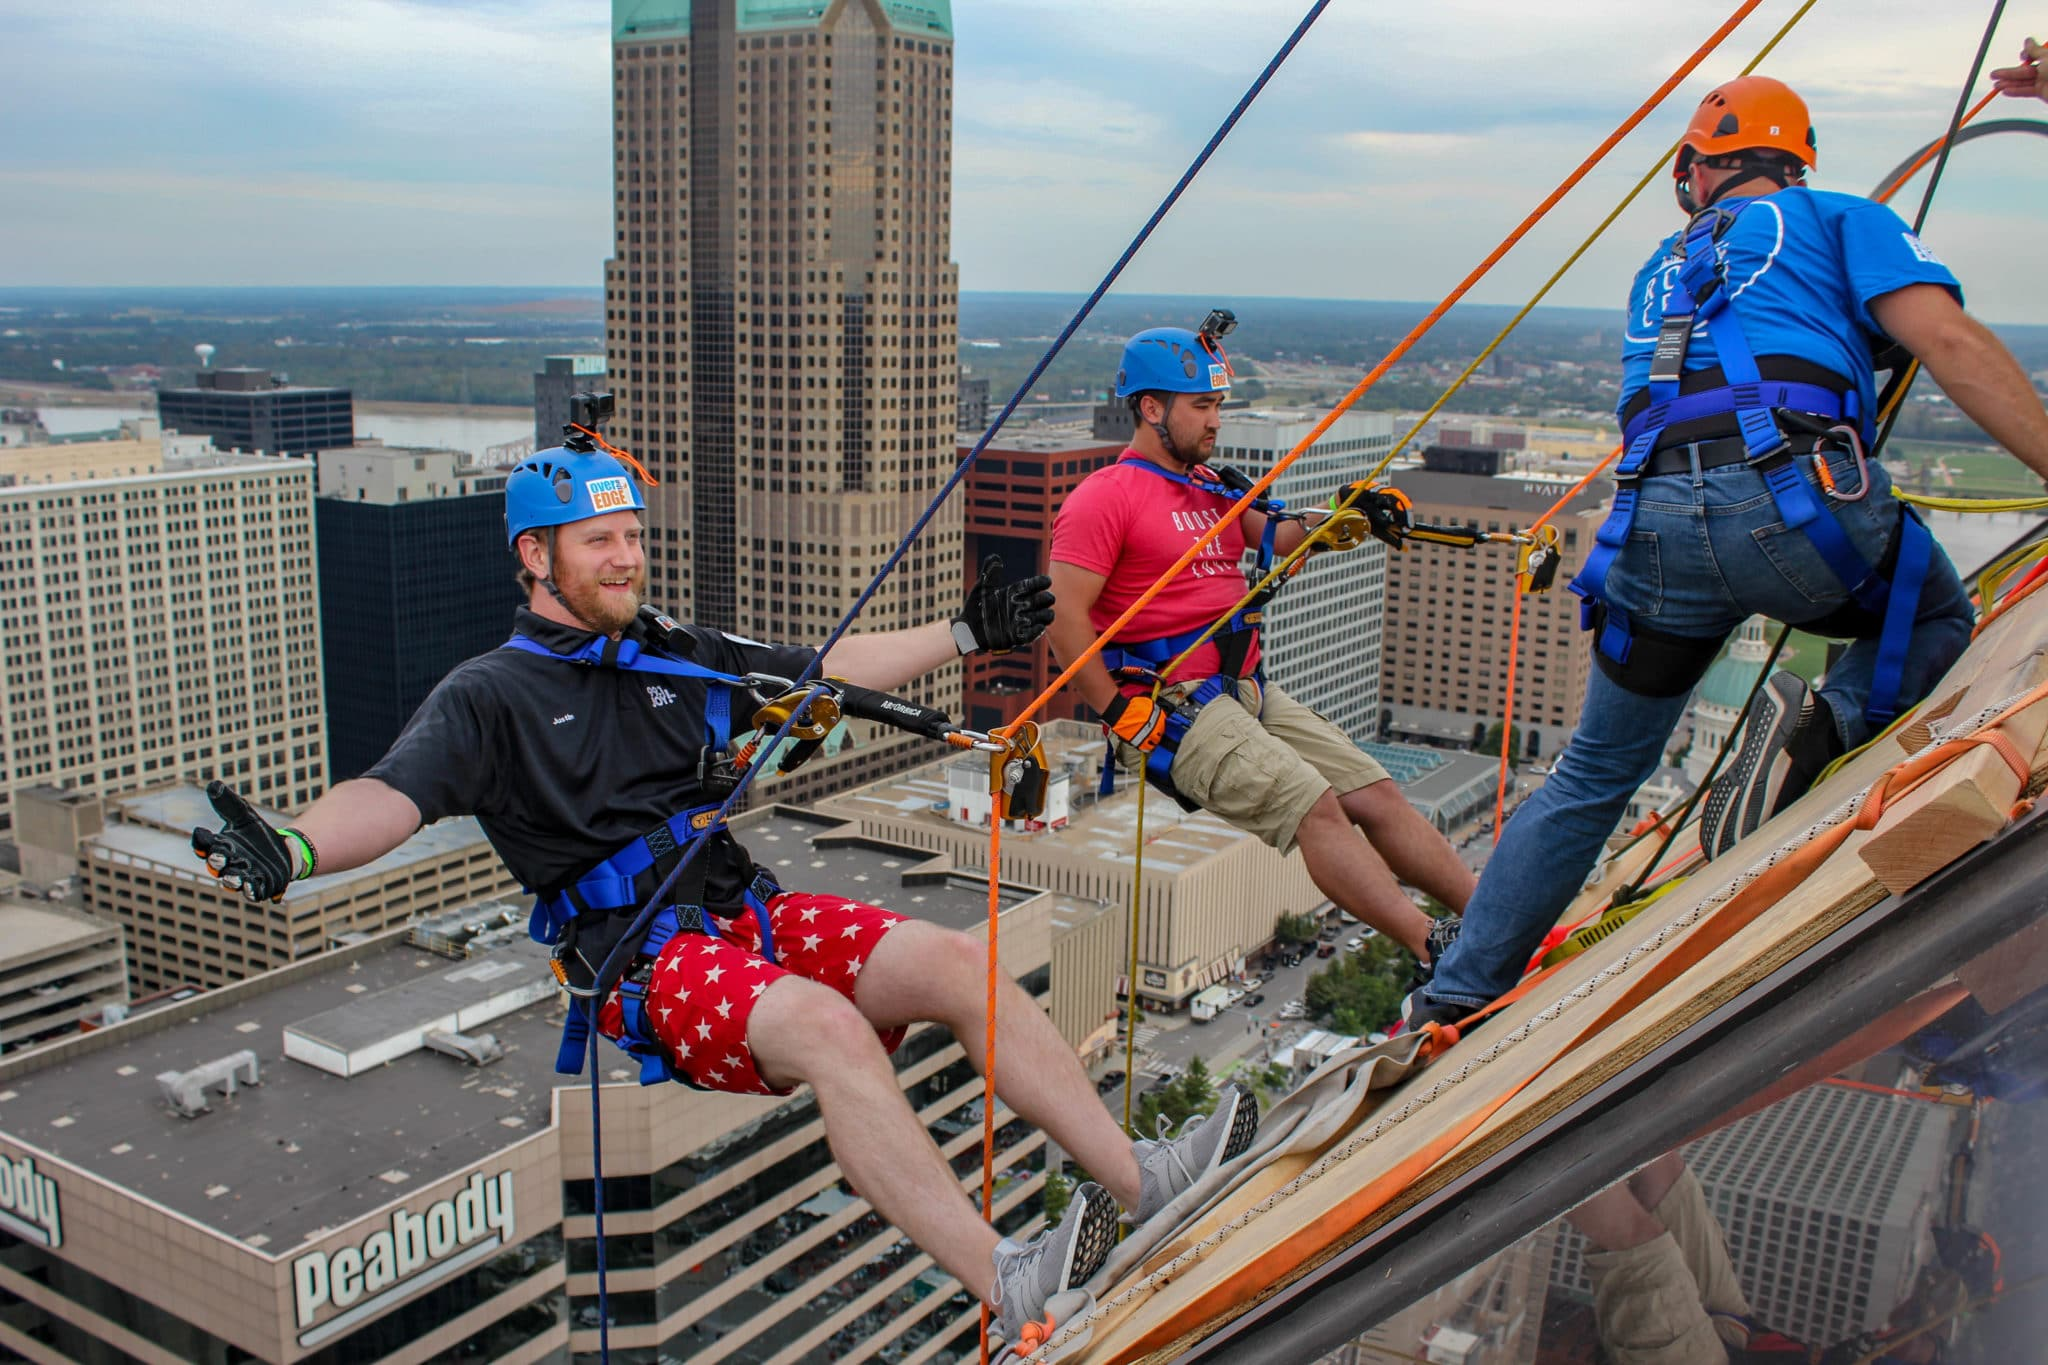 Two people wearing protective gear and ropes lean off the side of a building